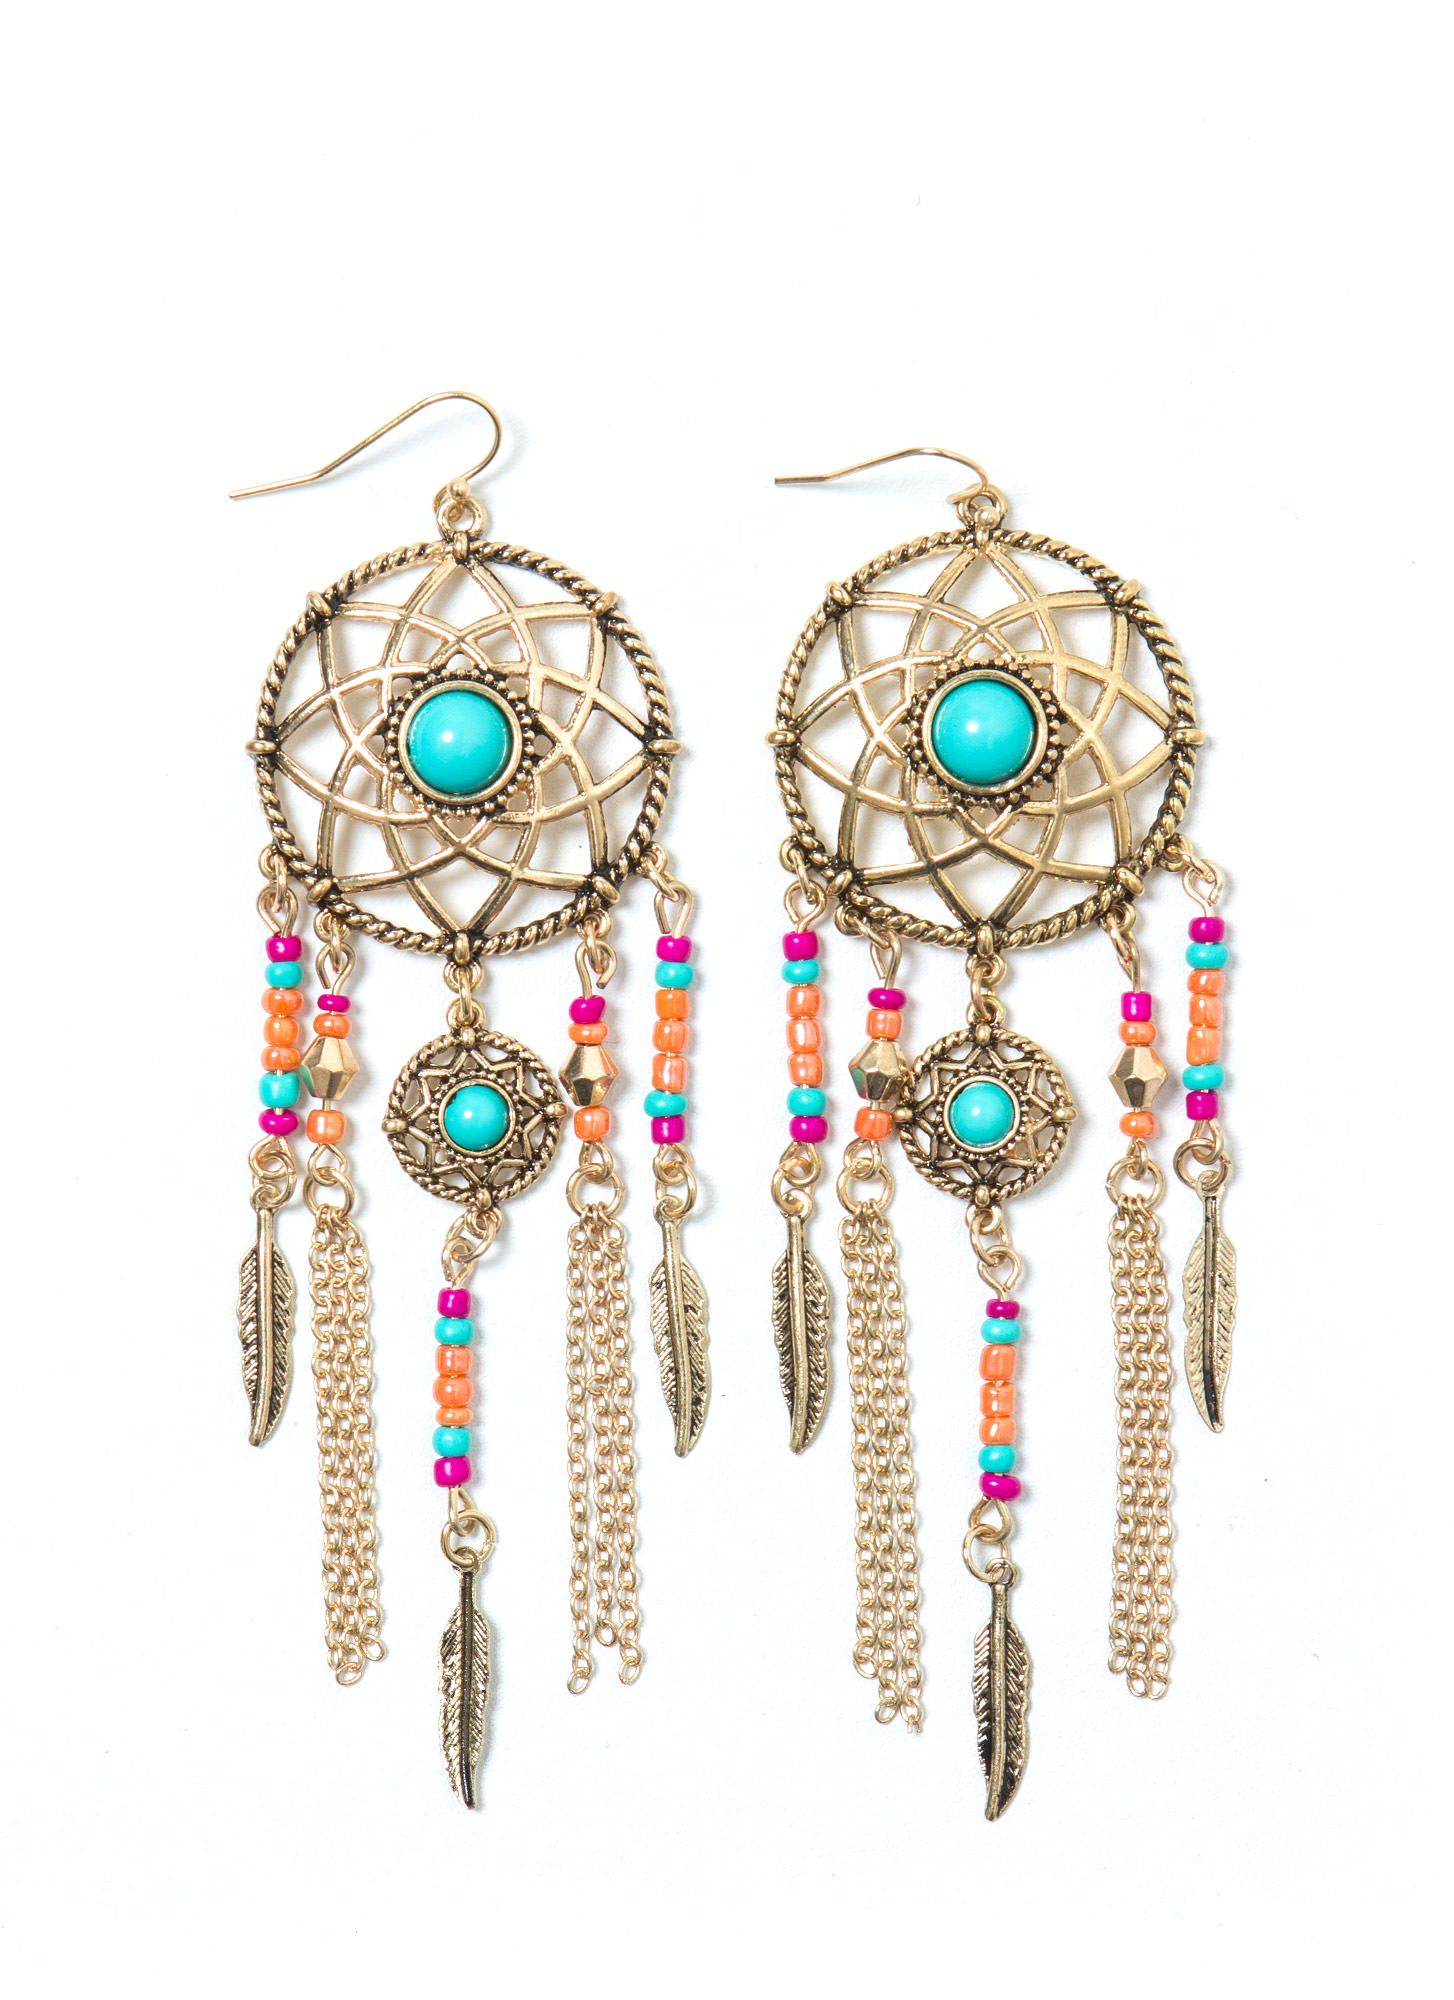 Follow Ur Dream Catcher Earrings Jewelry Western Cute Boho